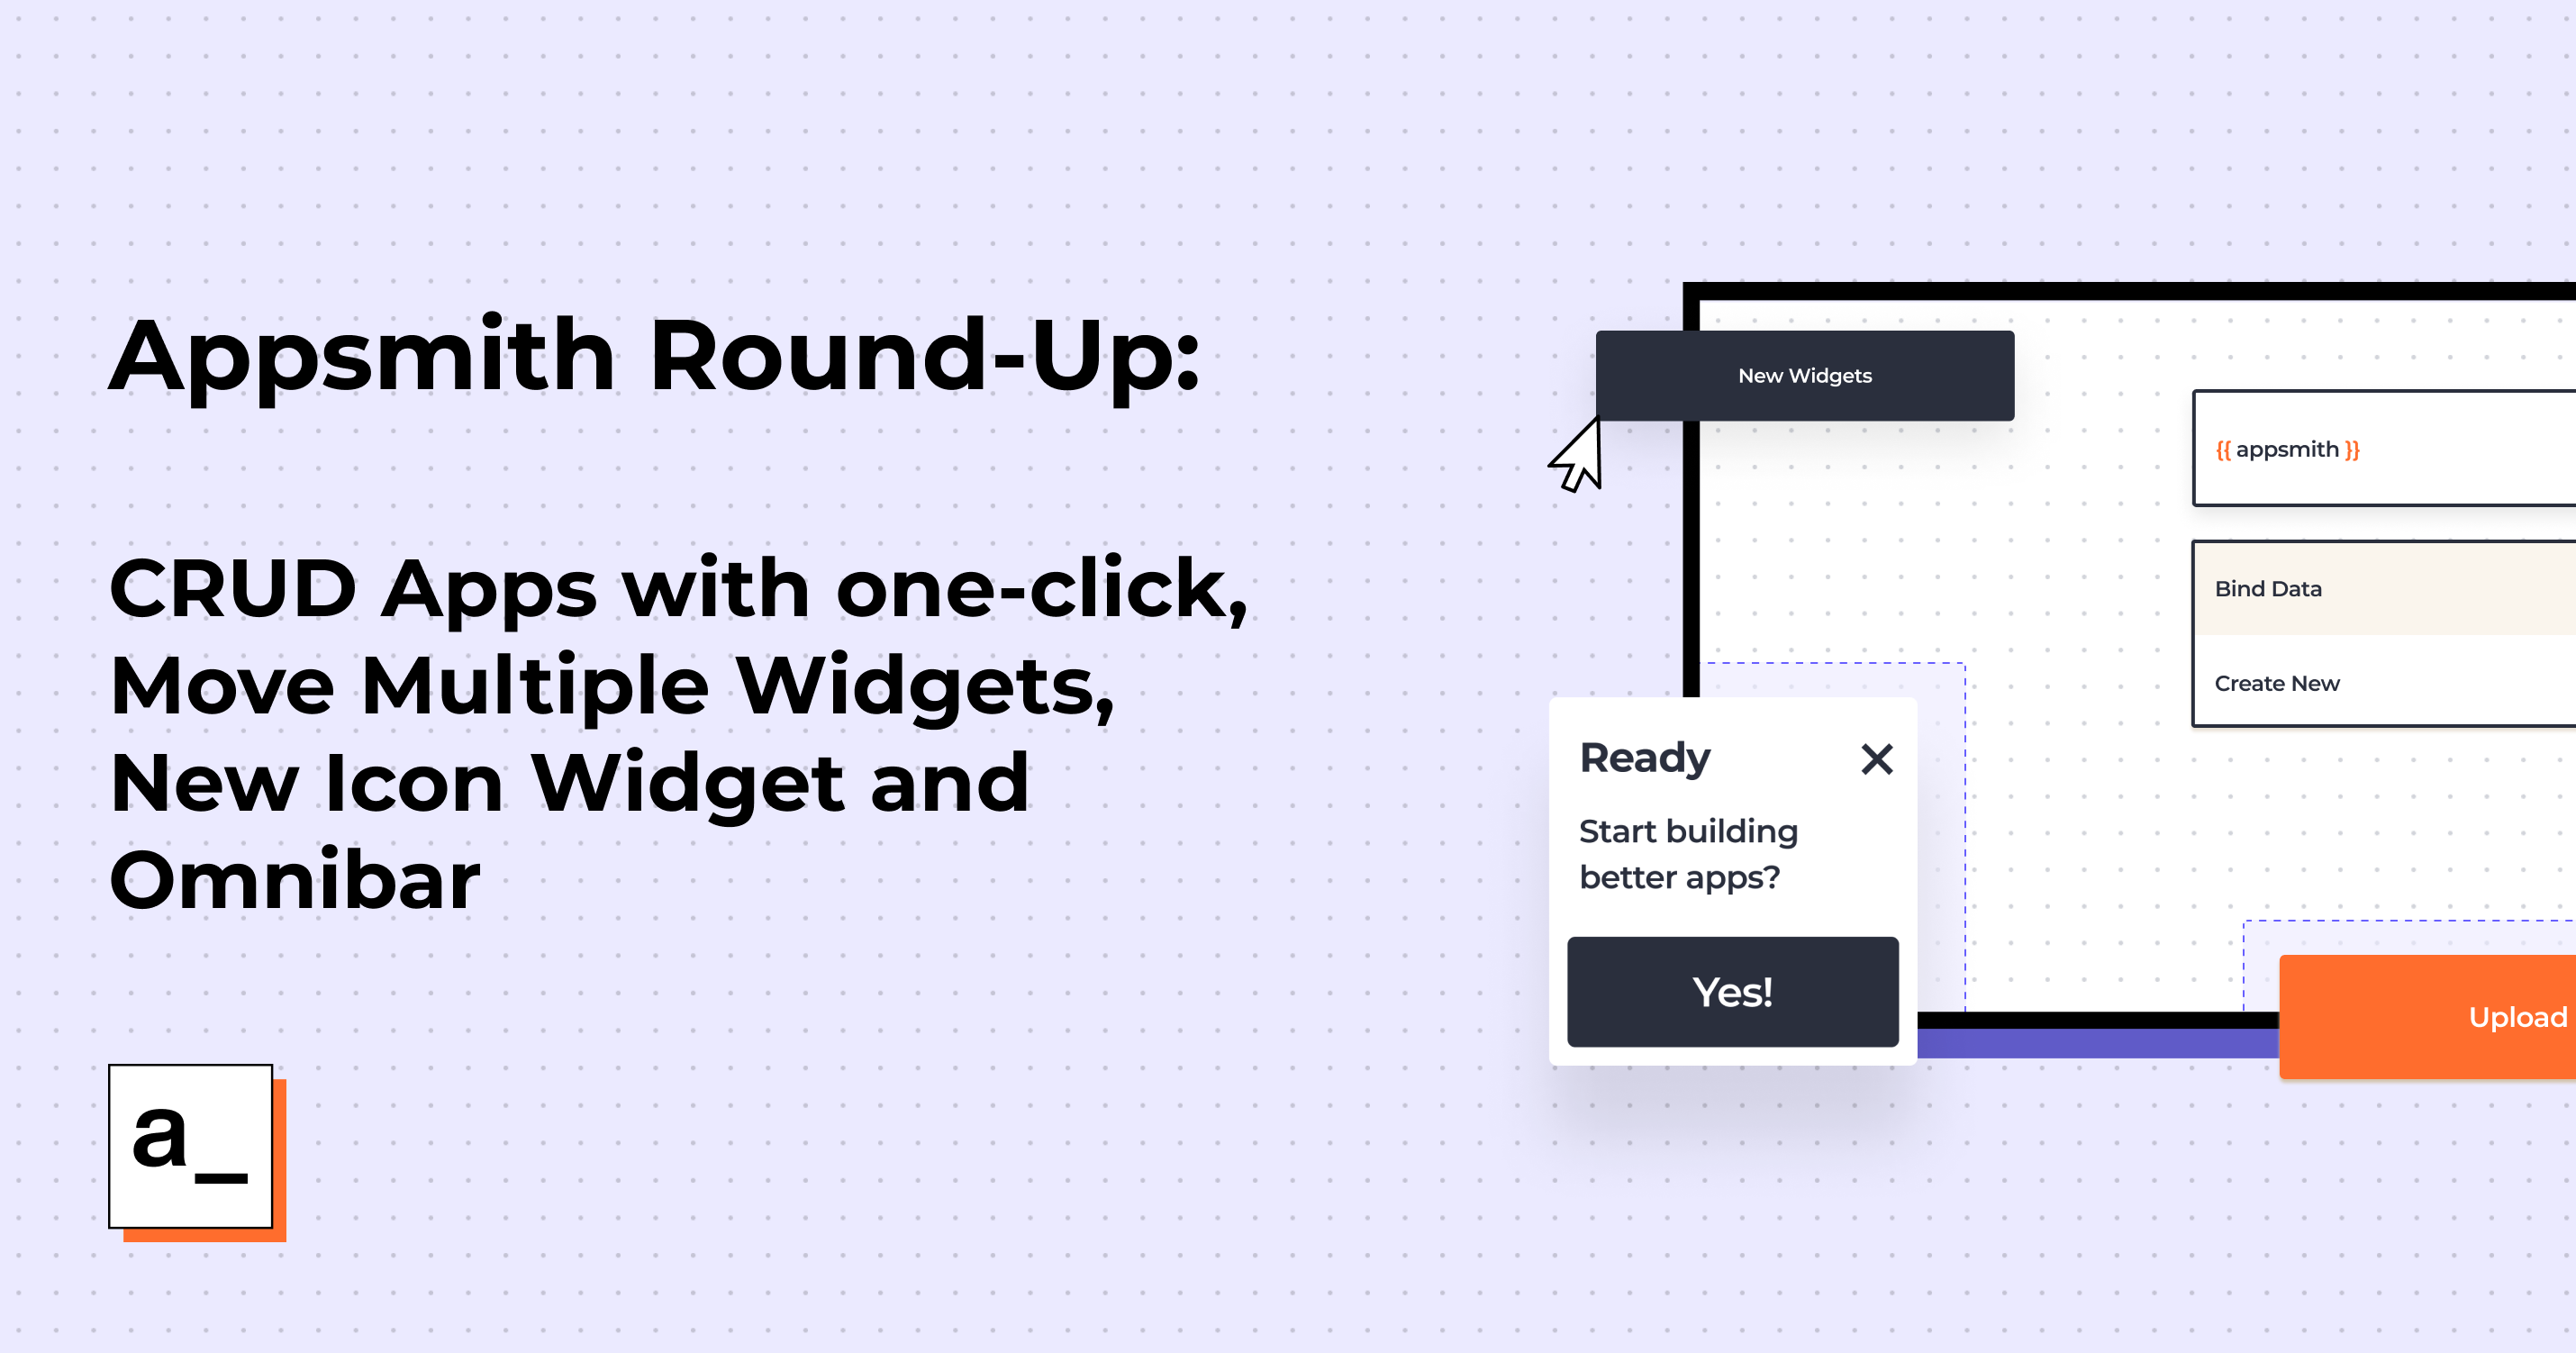 Appsmith Roundup: Build CRUD Apps with one-click, Move Multiple Widgets, New Icon Widget and Omnibar